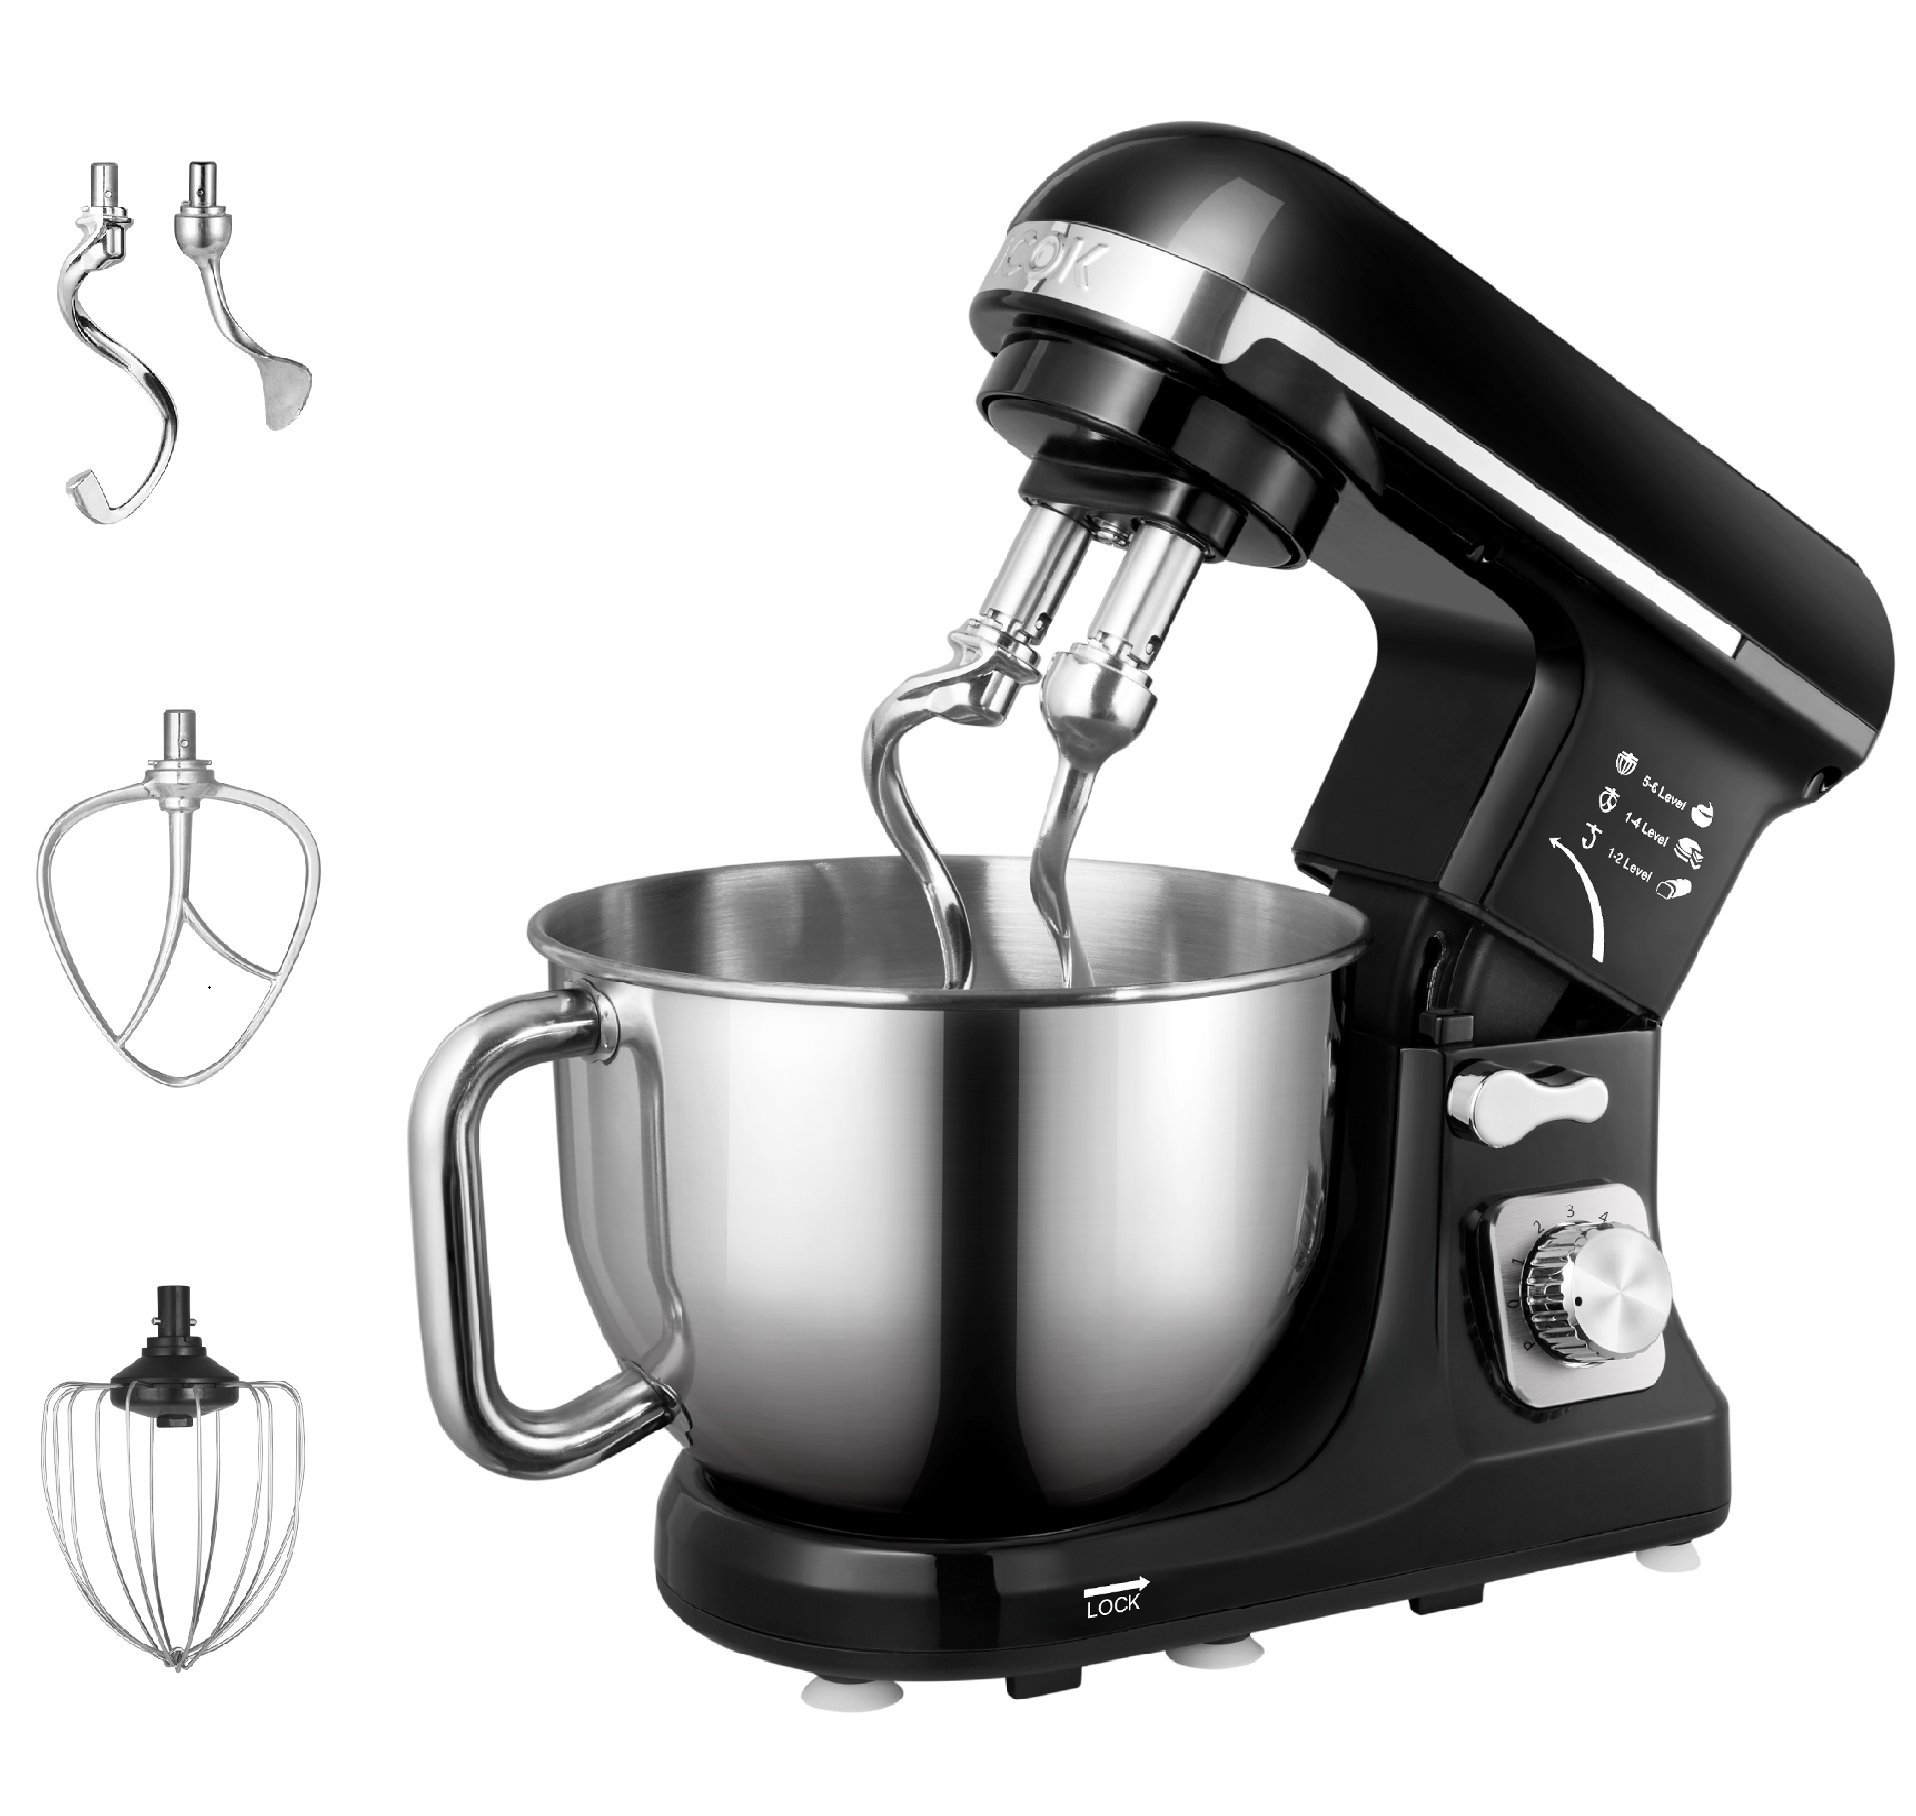 aicok stand mixer food mixer kitchen electric mixer with double dough hook whisk beater splash guard 6 speed 5 quart stainless steel bowl black - Kitchen Mixer